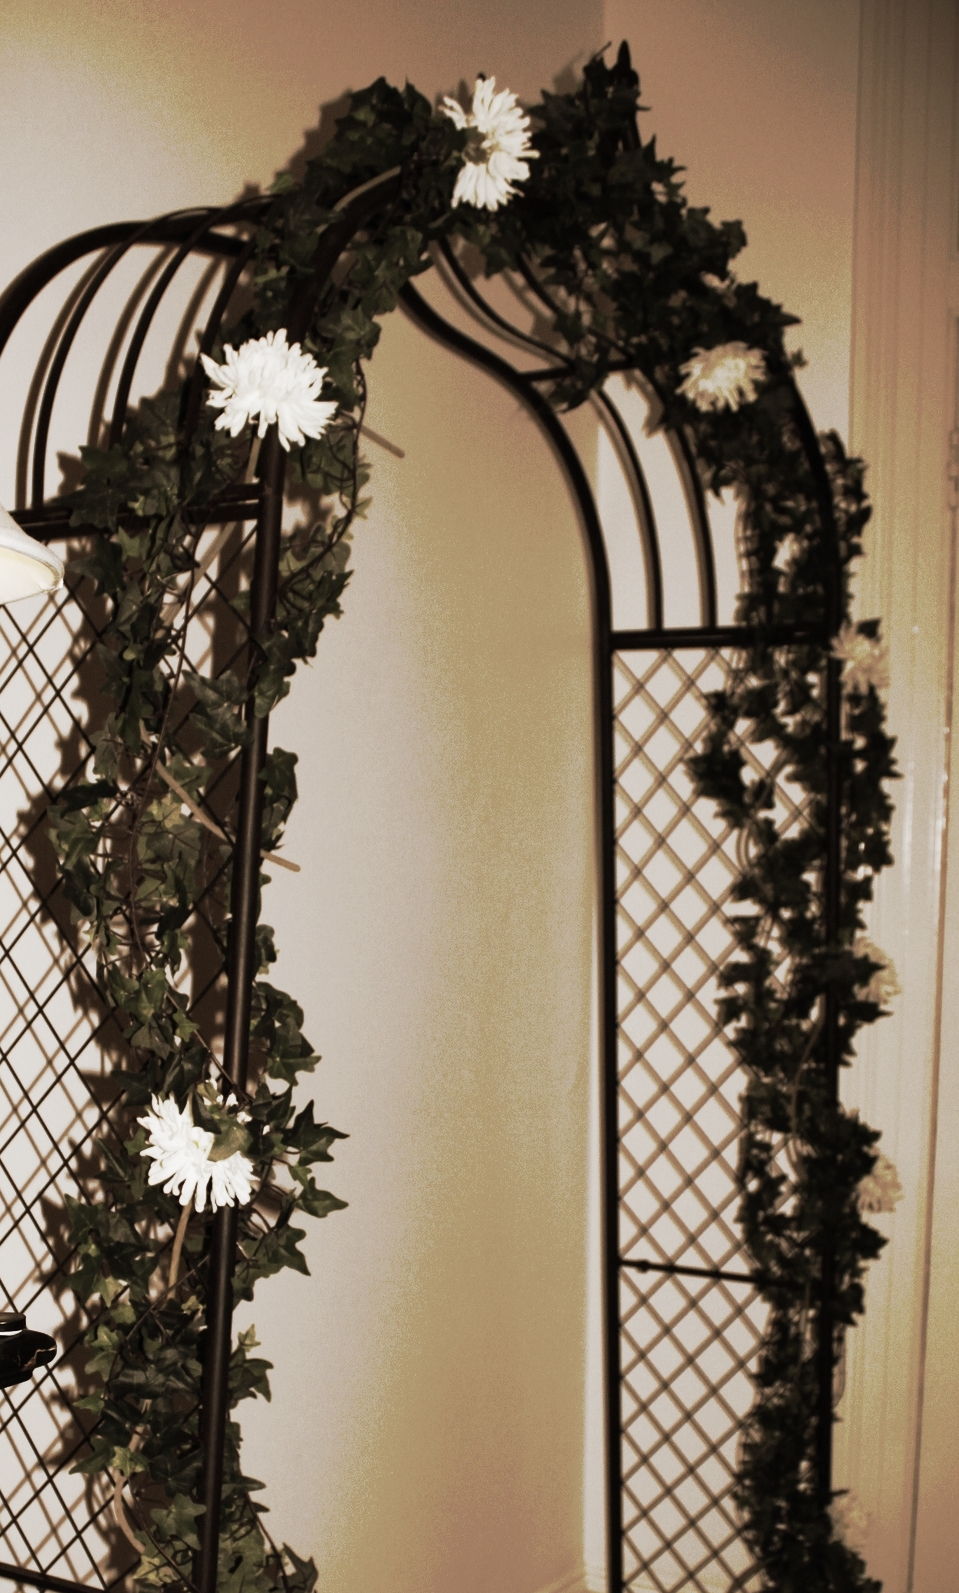 Rustic wedding arch with greenery